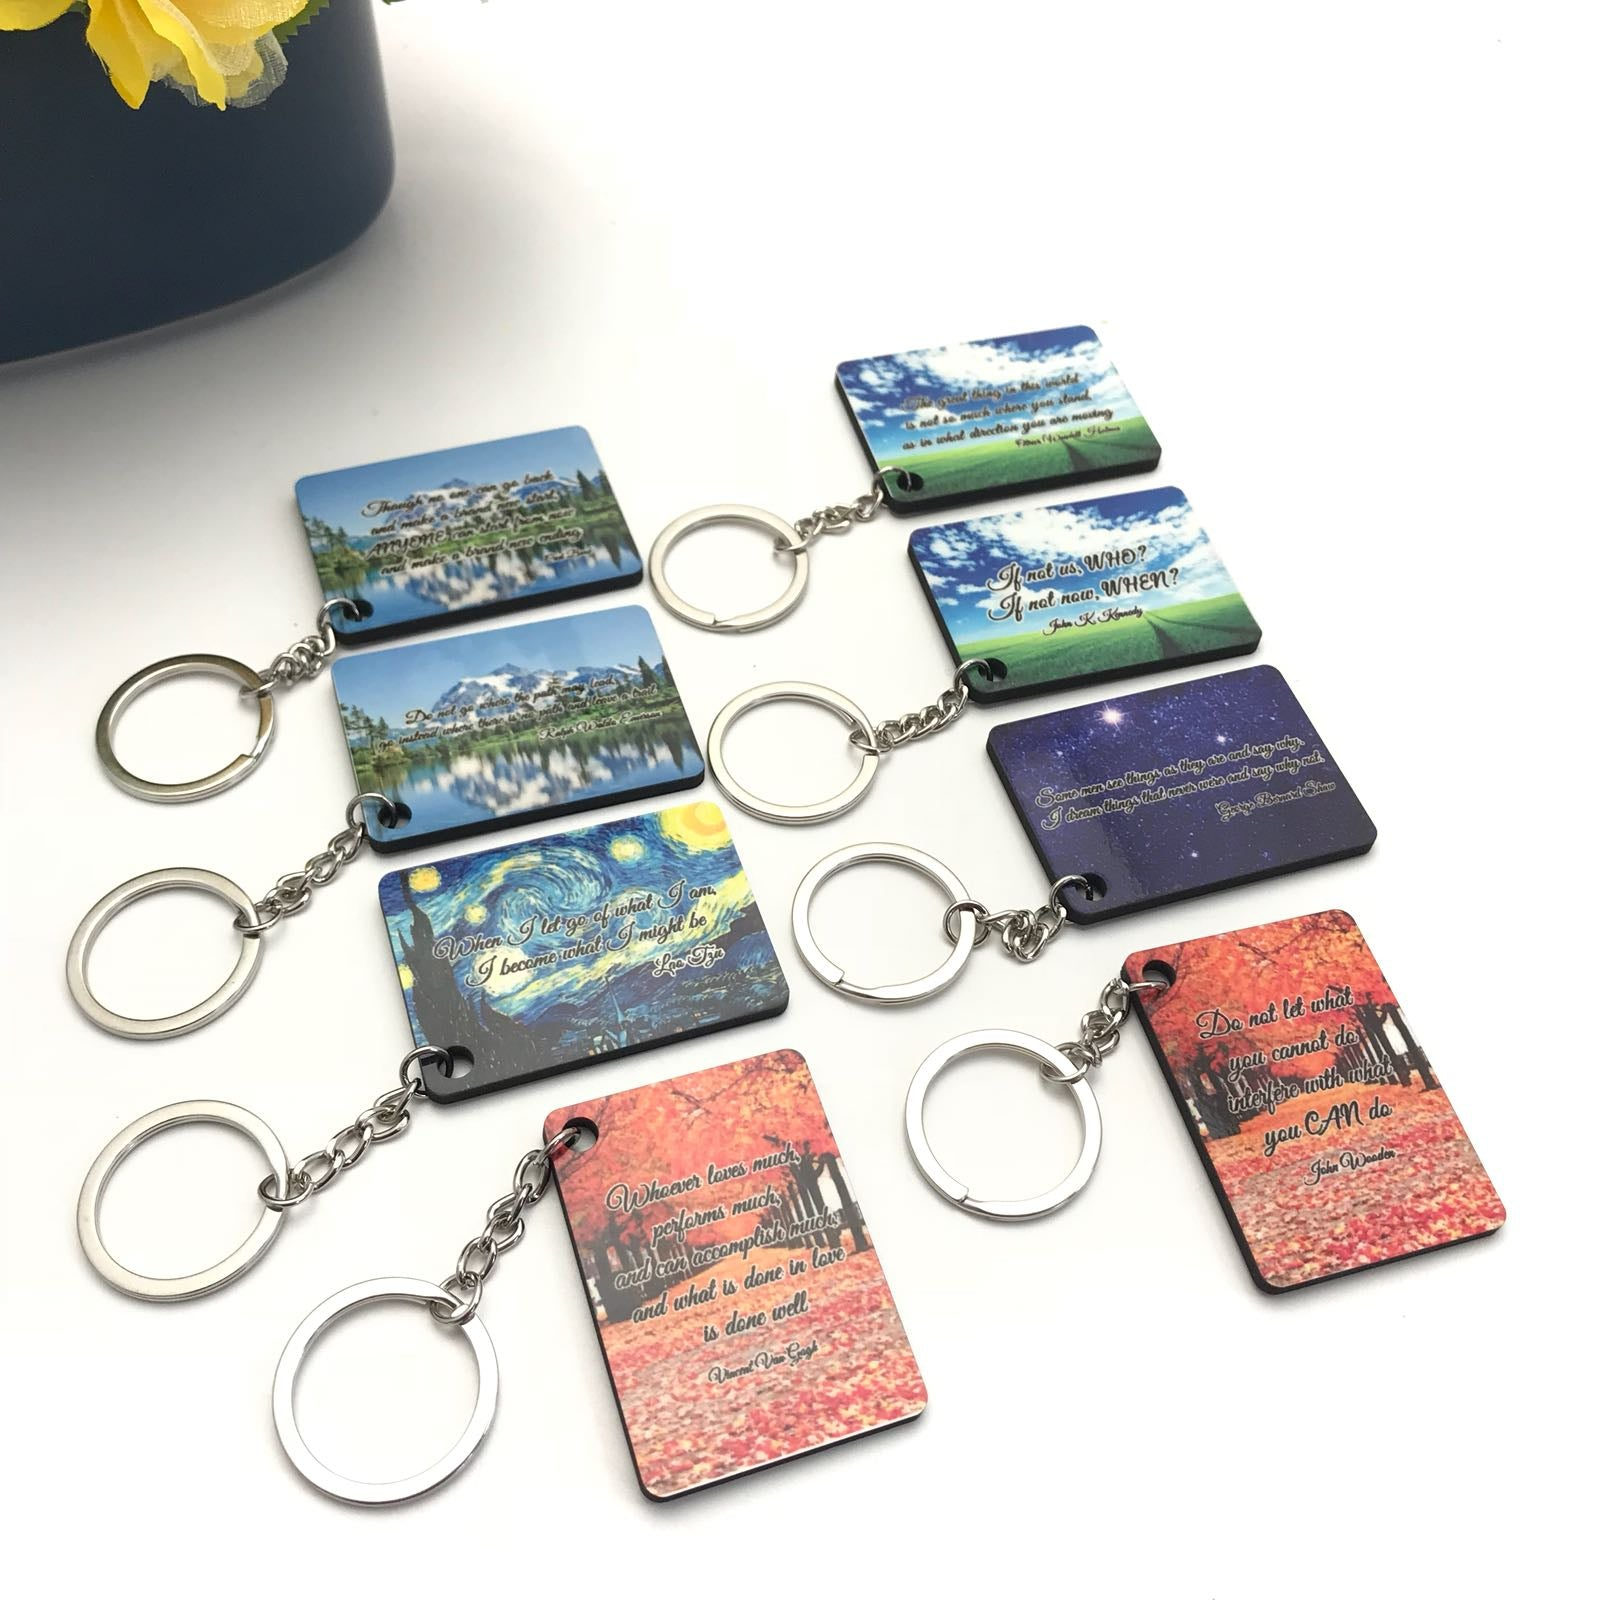 Key Chain with Custom Image